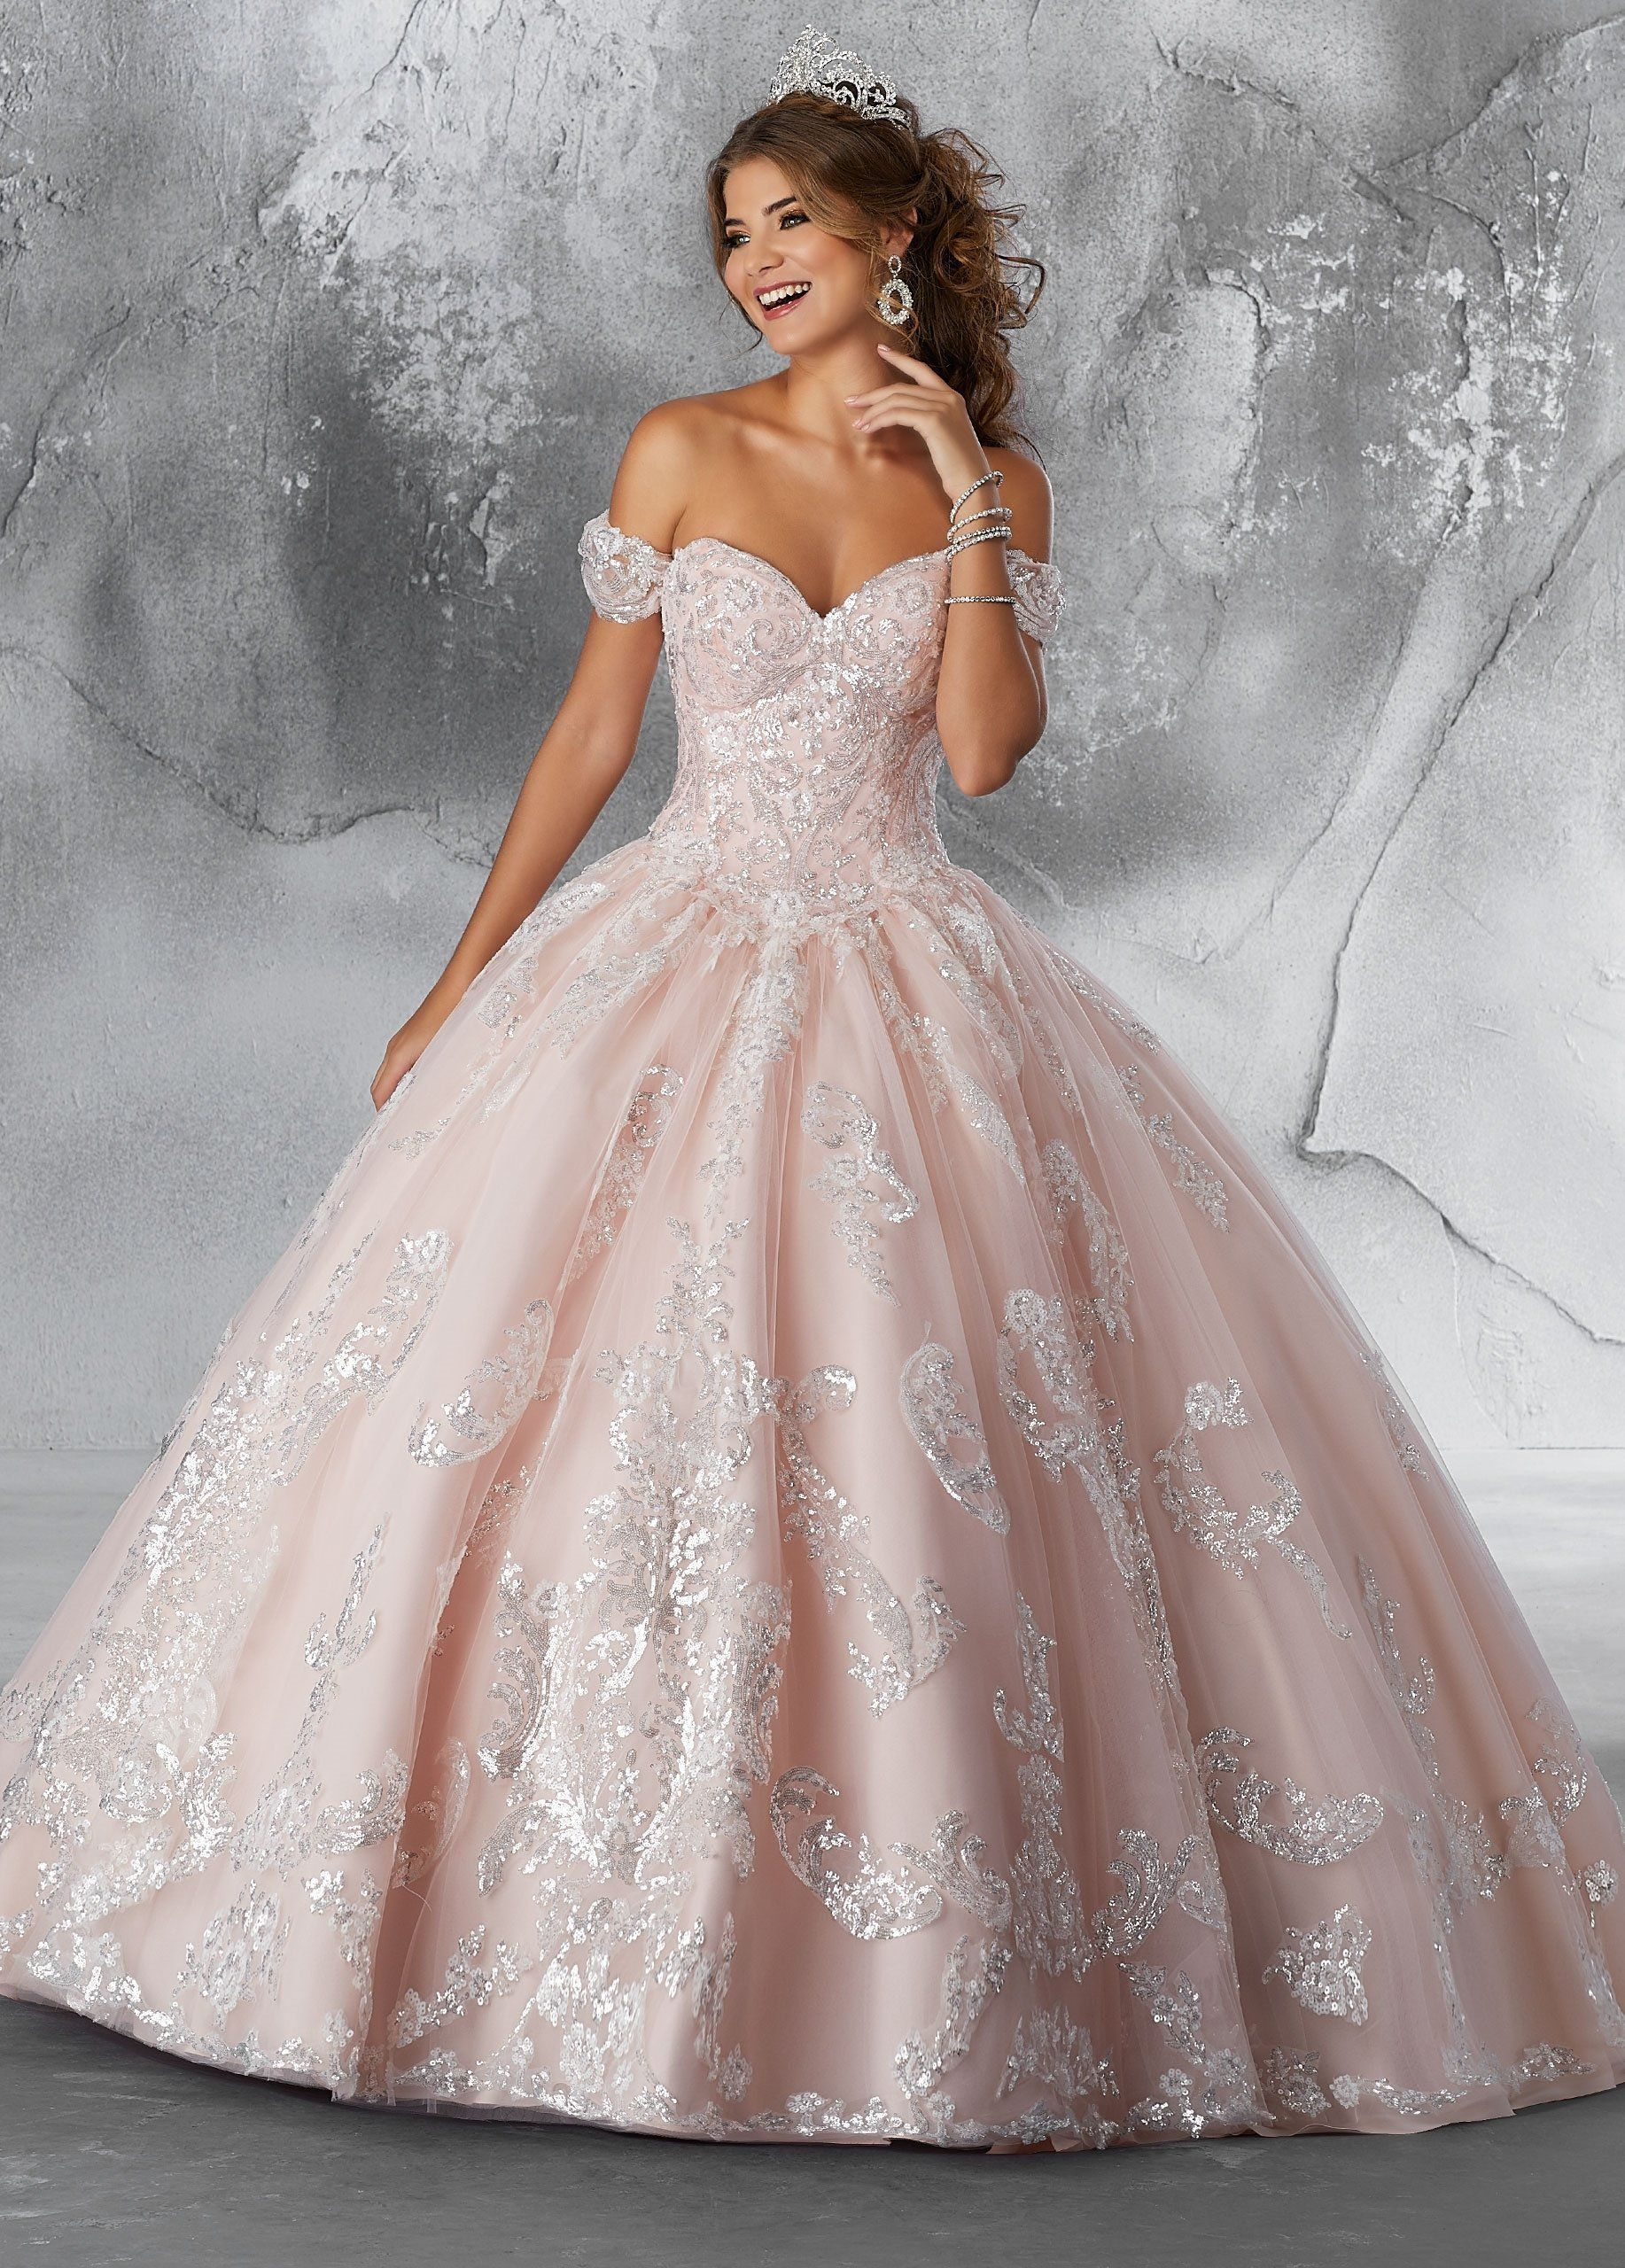 fc25eac70d8 Sequined Strapless Quinceanera Dress by Mori Lee Vizcaya 89186 ...